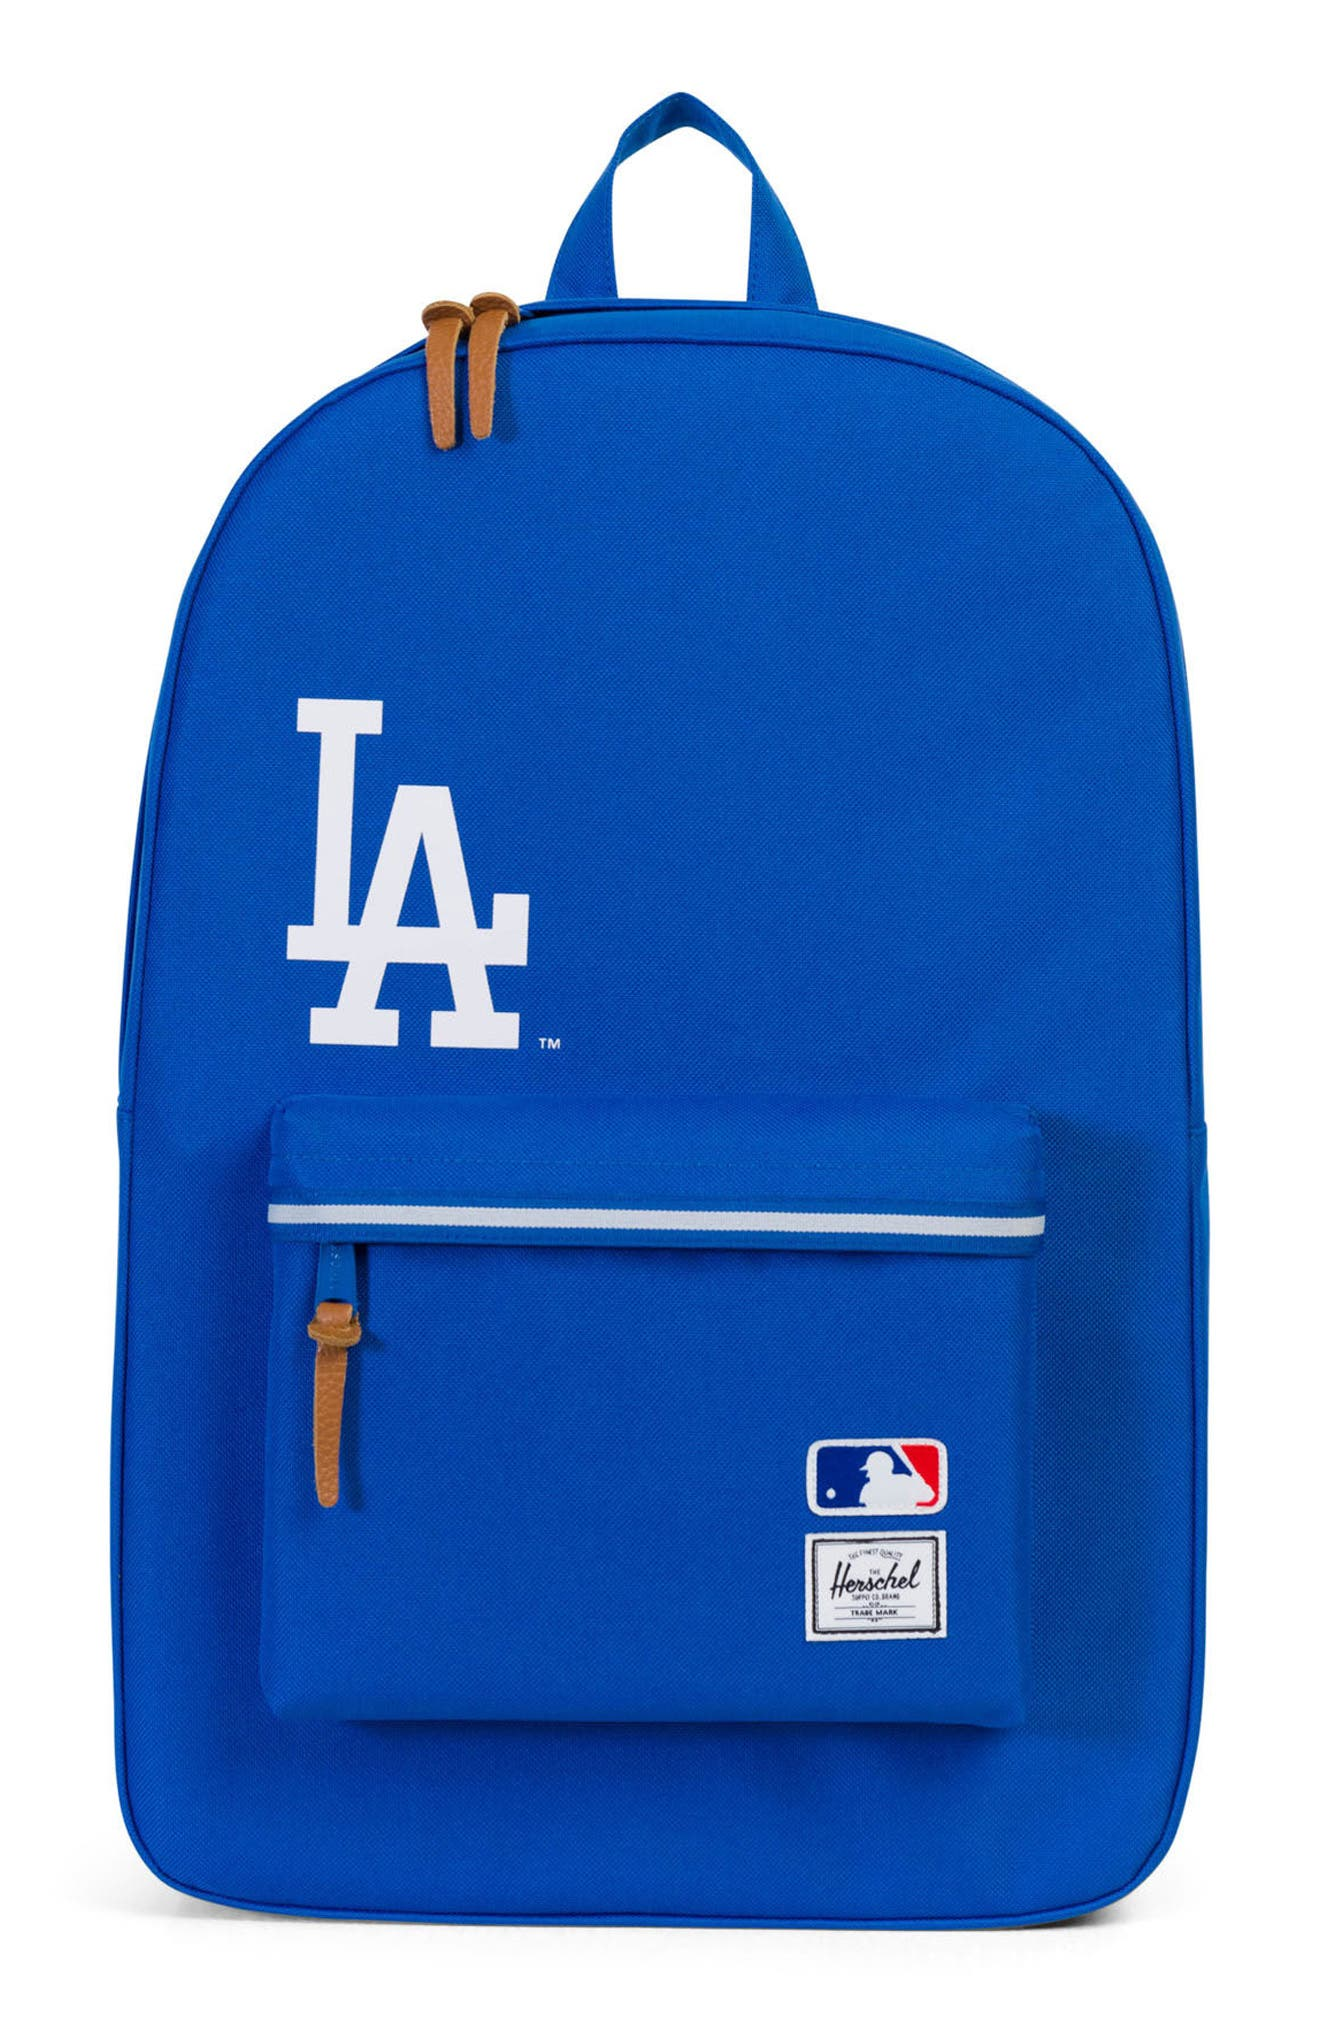 HERSCHEL SUPPLY CO. HERITAGE MLB BACKPACK